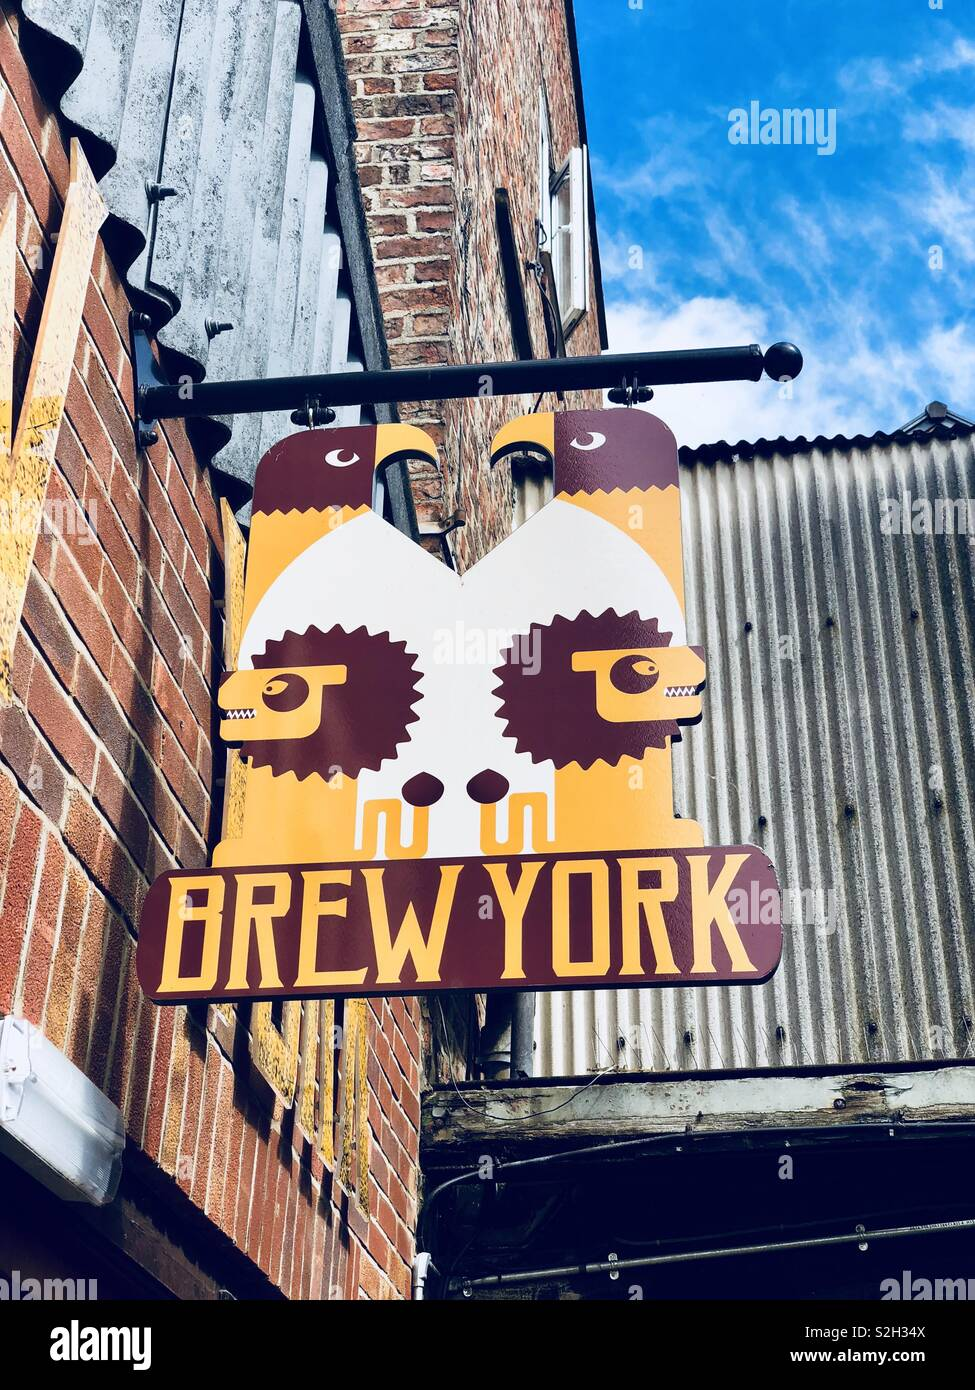 Brew York Signage in York. Foto Stock